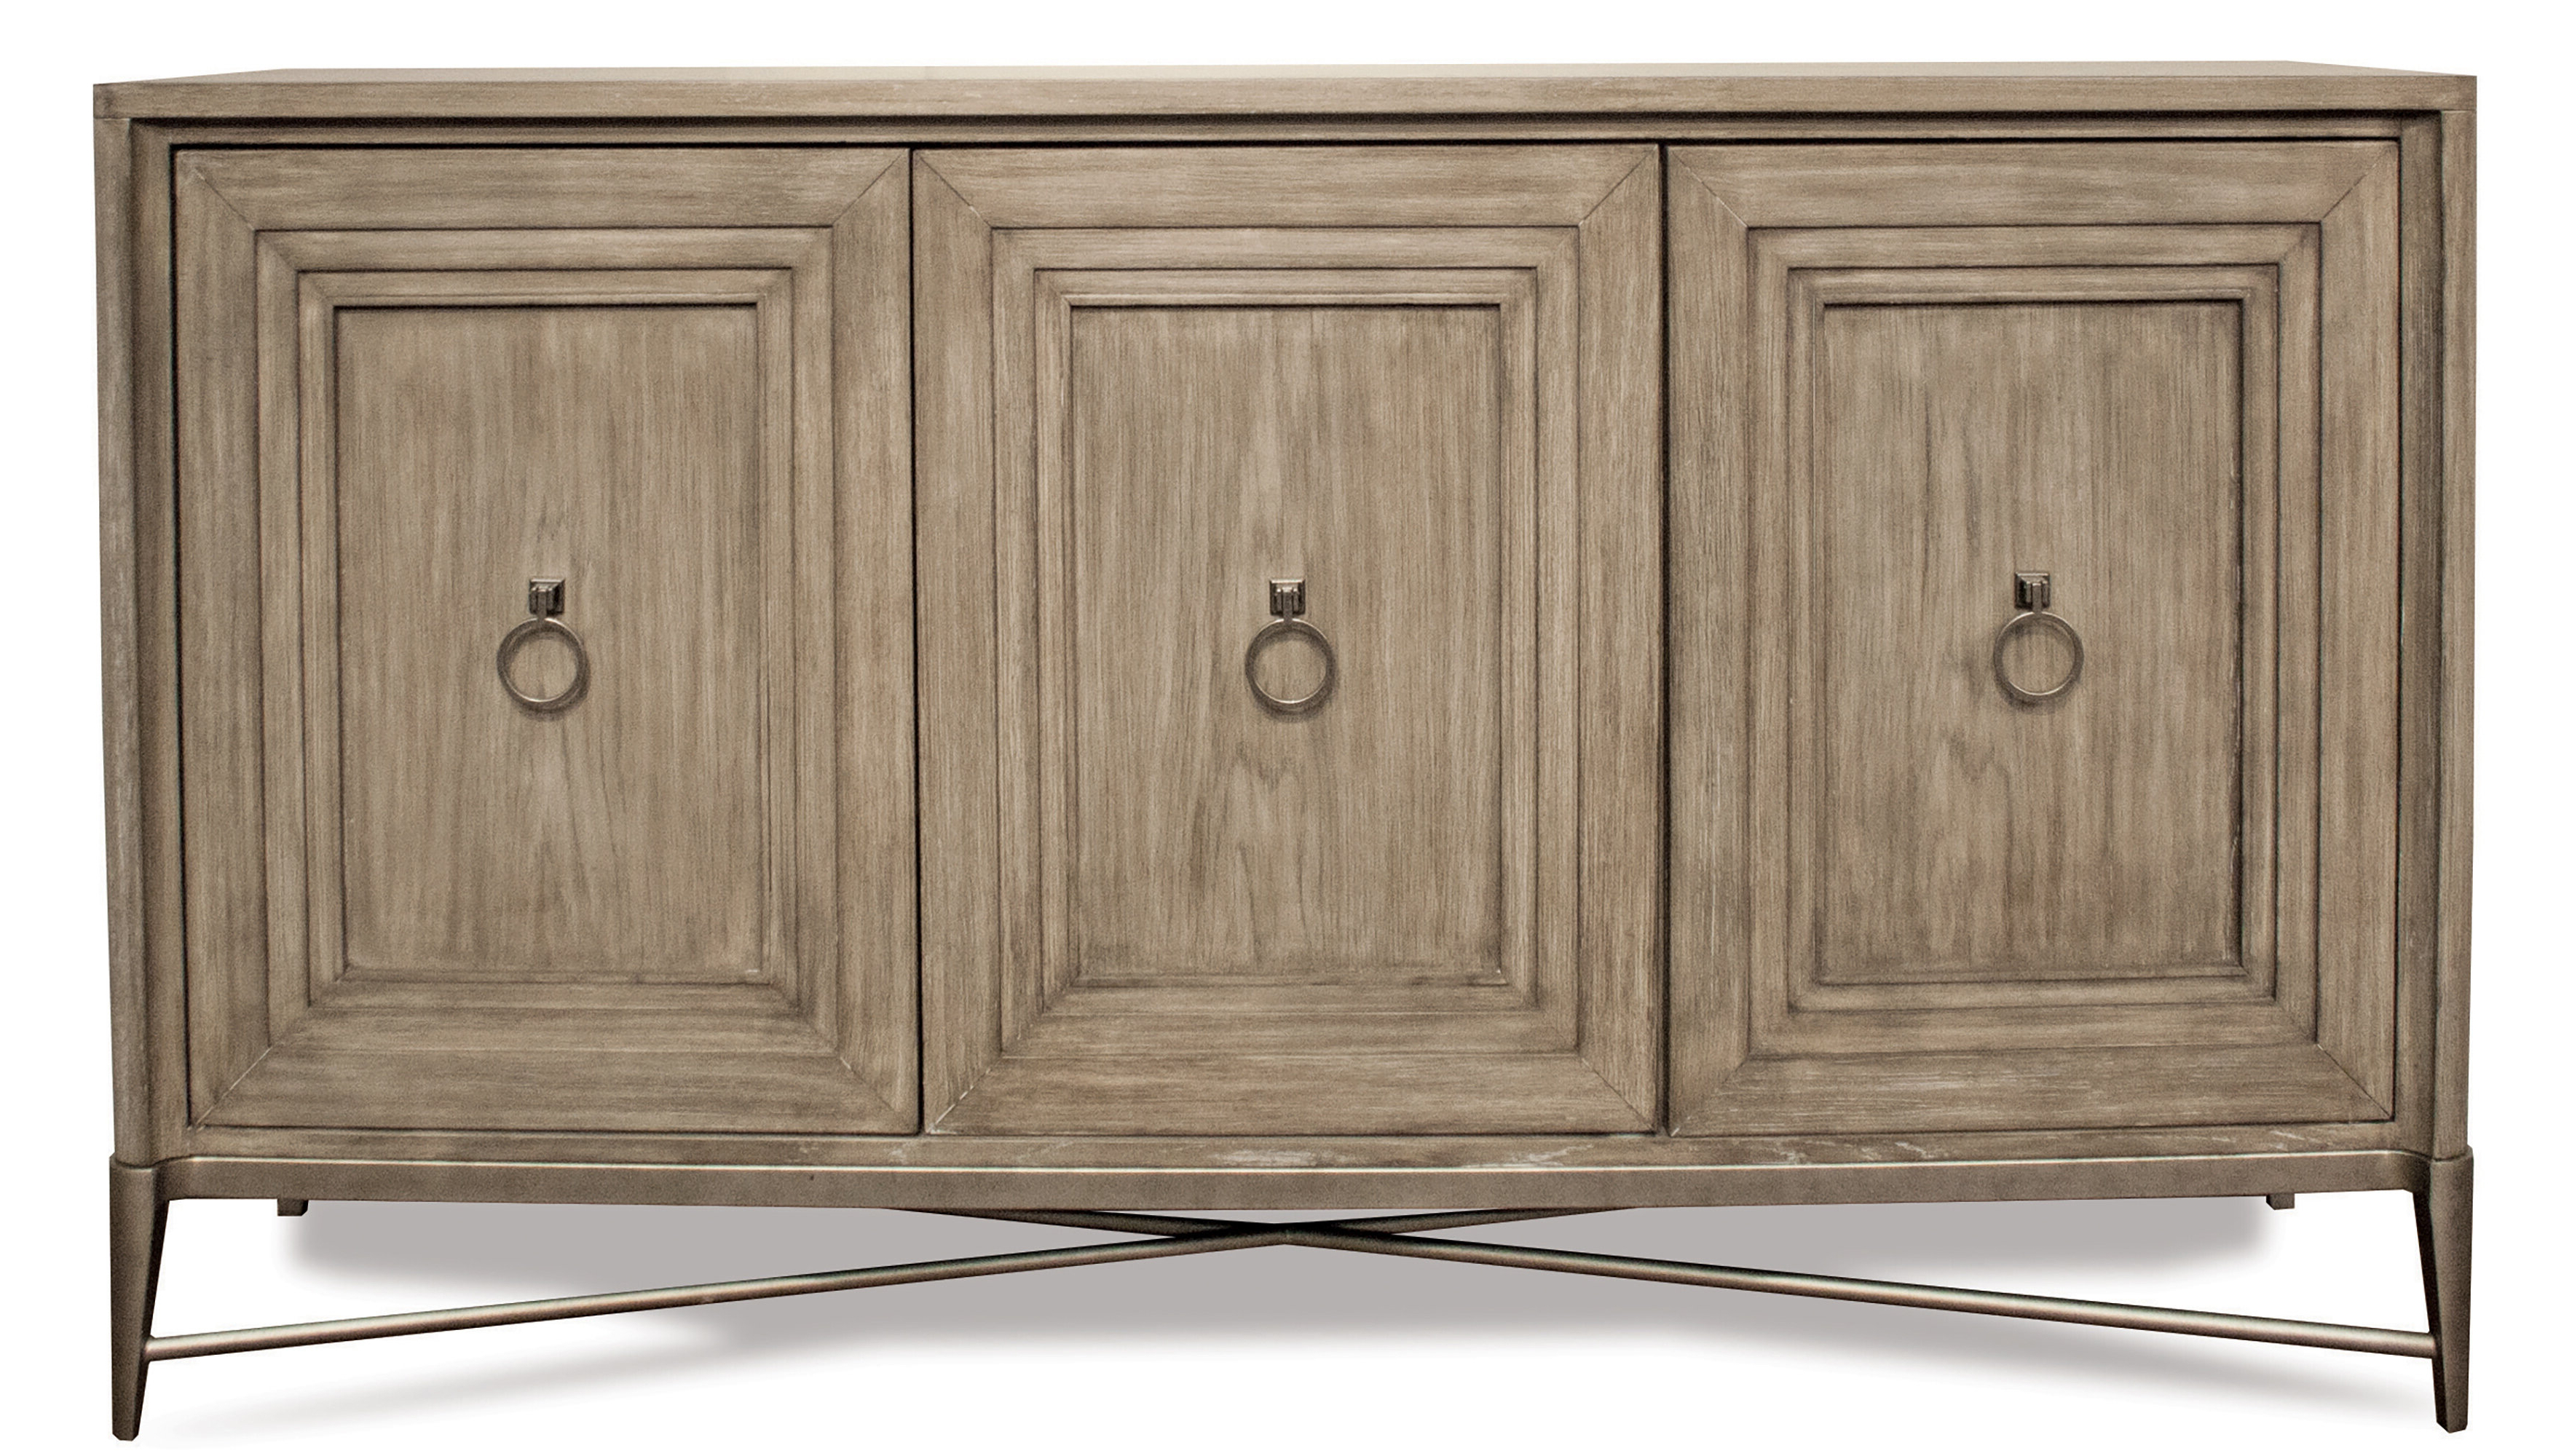 Sideboards & Buffet Tables You'll Love In 2019 | Wayfair Intended For Velazco Sideboards (View 7 of 20)